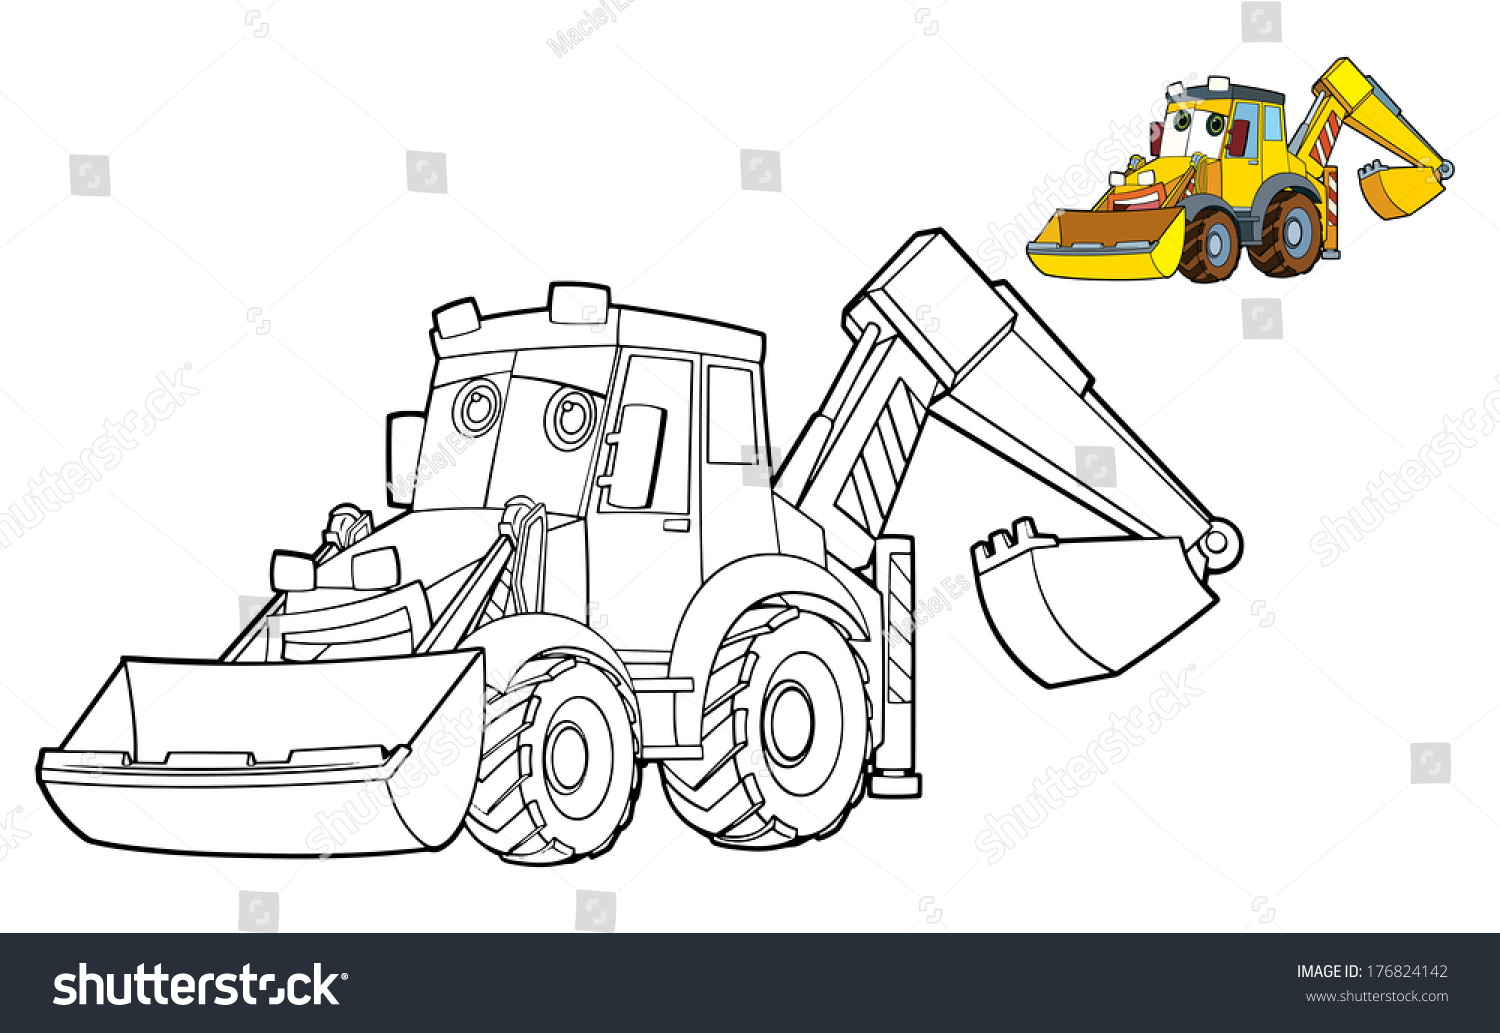 86 Coloring Page Excavator